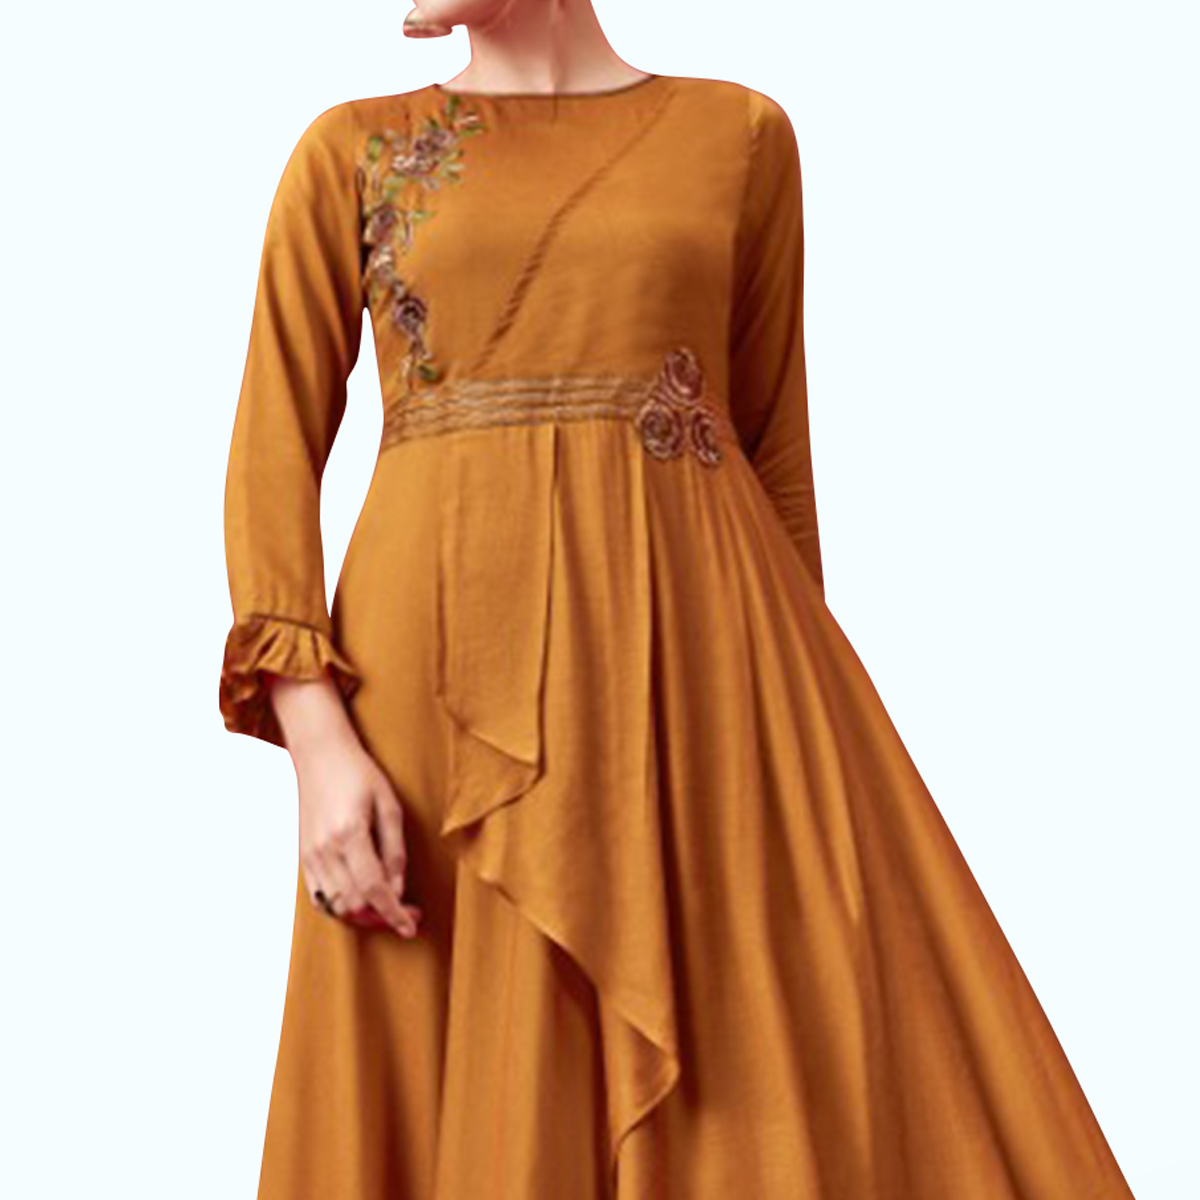 Prominent Mustard Yellow Colored Party Wear Embroidered Pure Cotton Gown